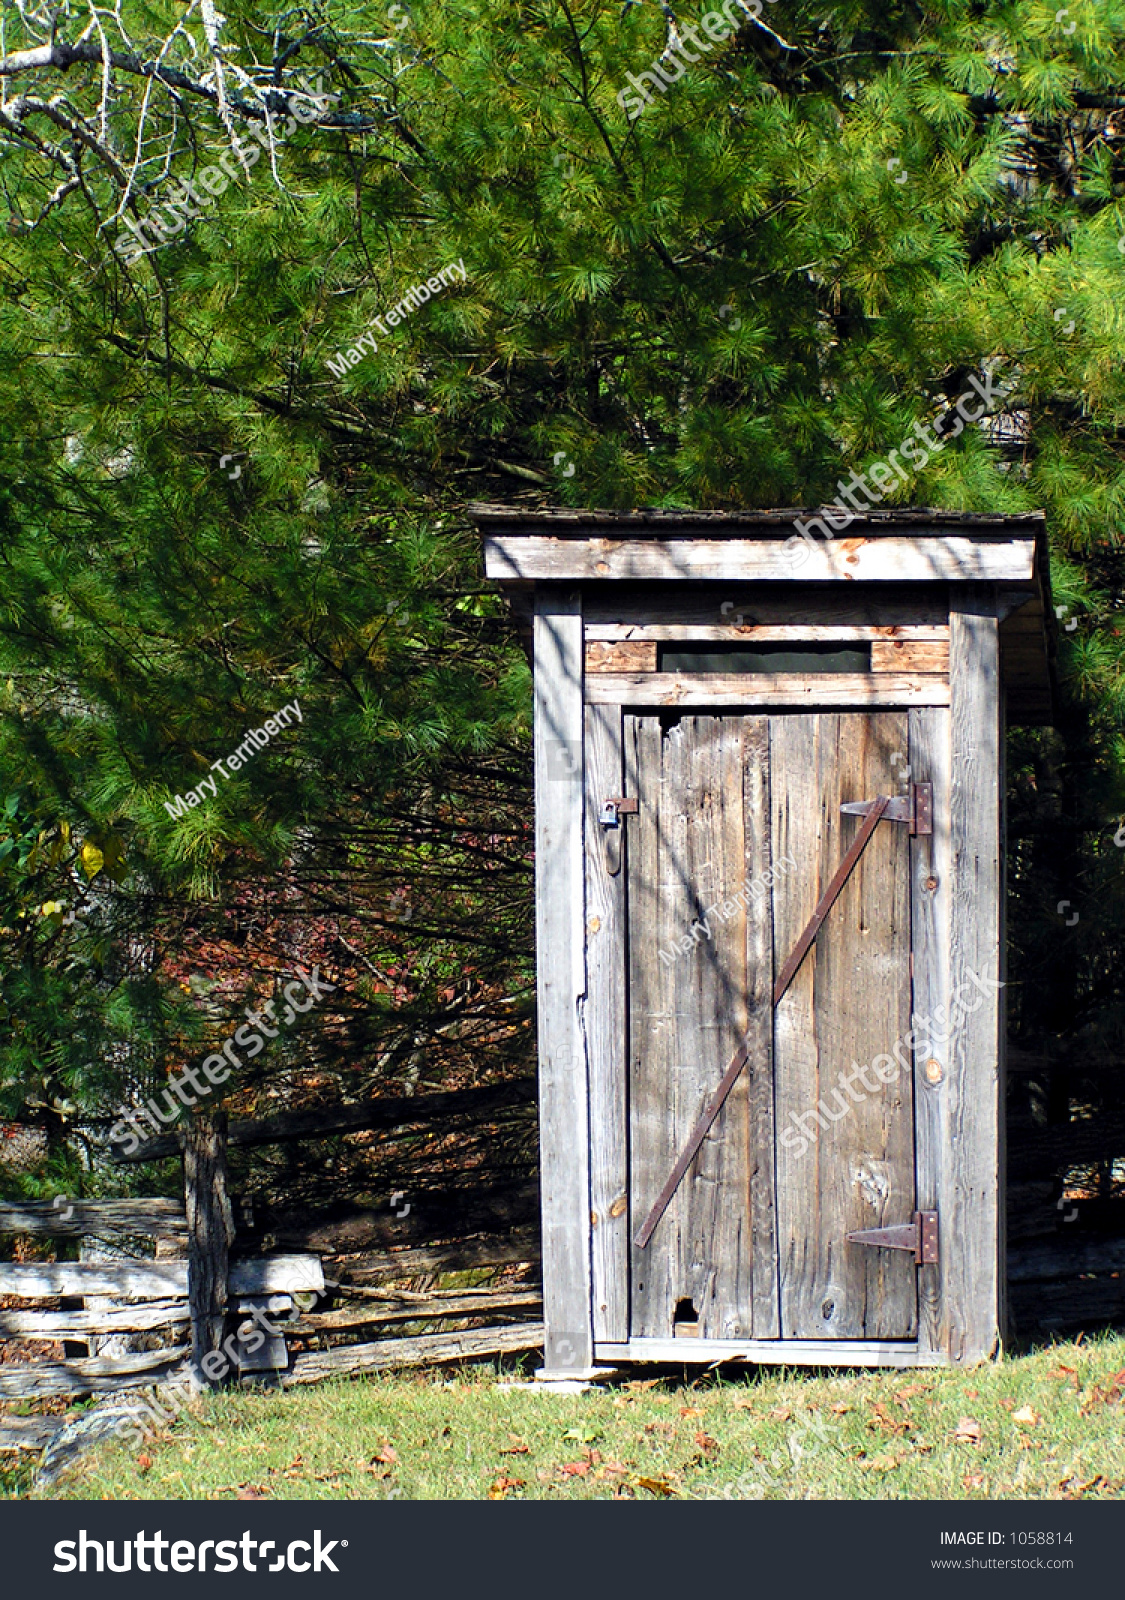 On outhouse swinging the gate